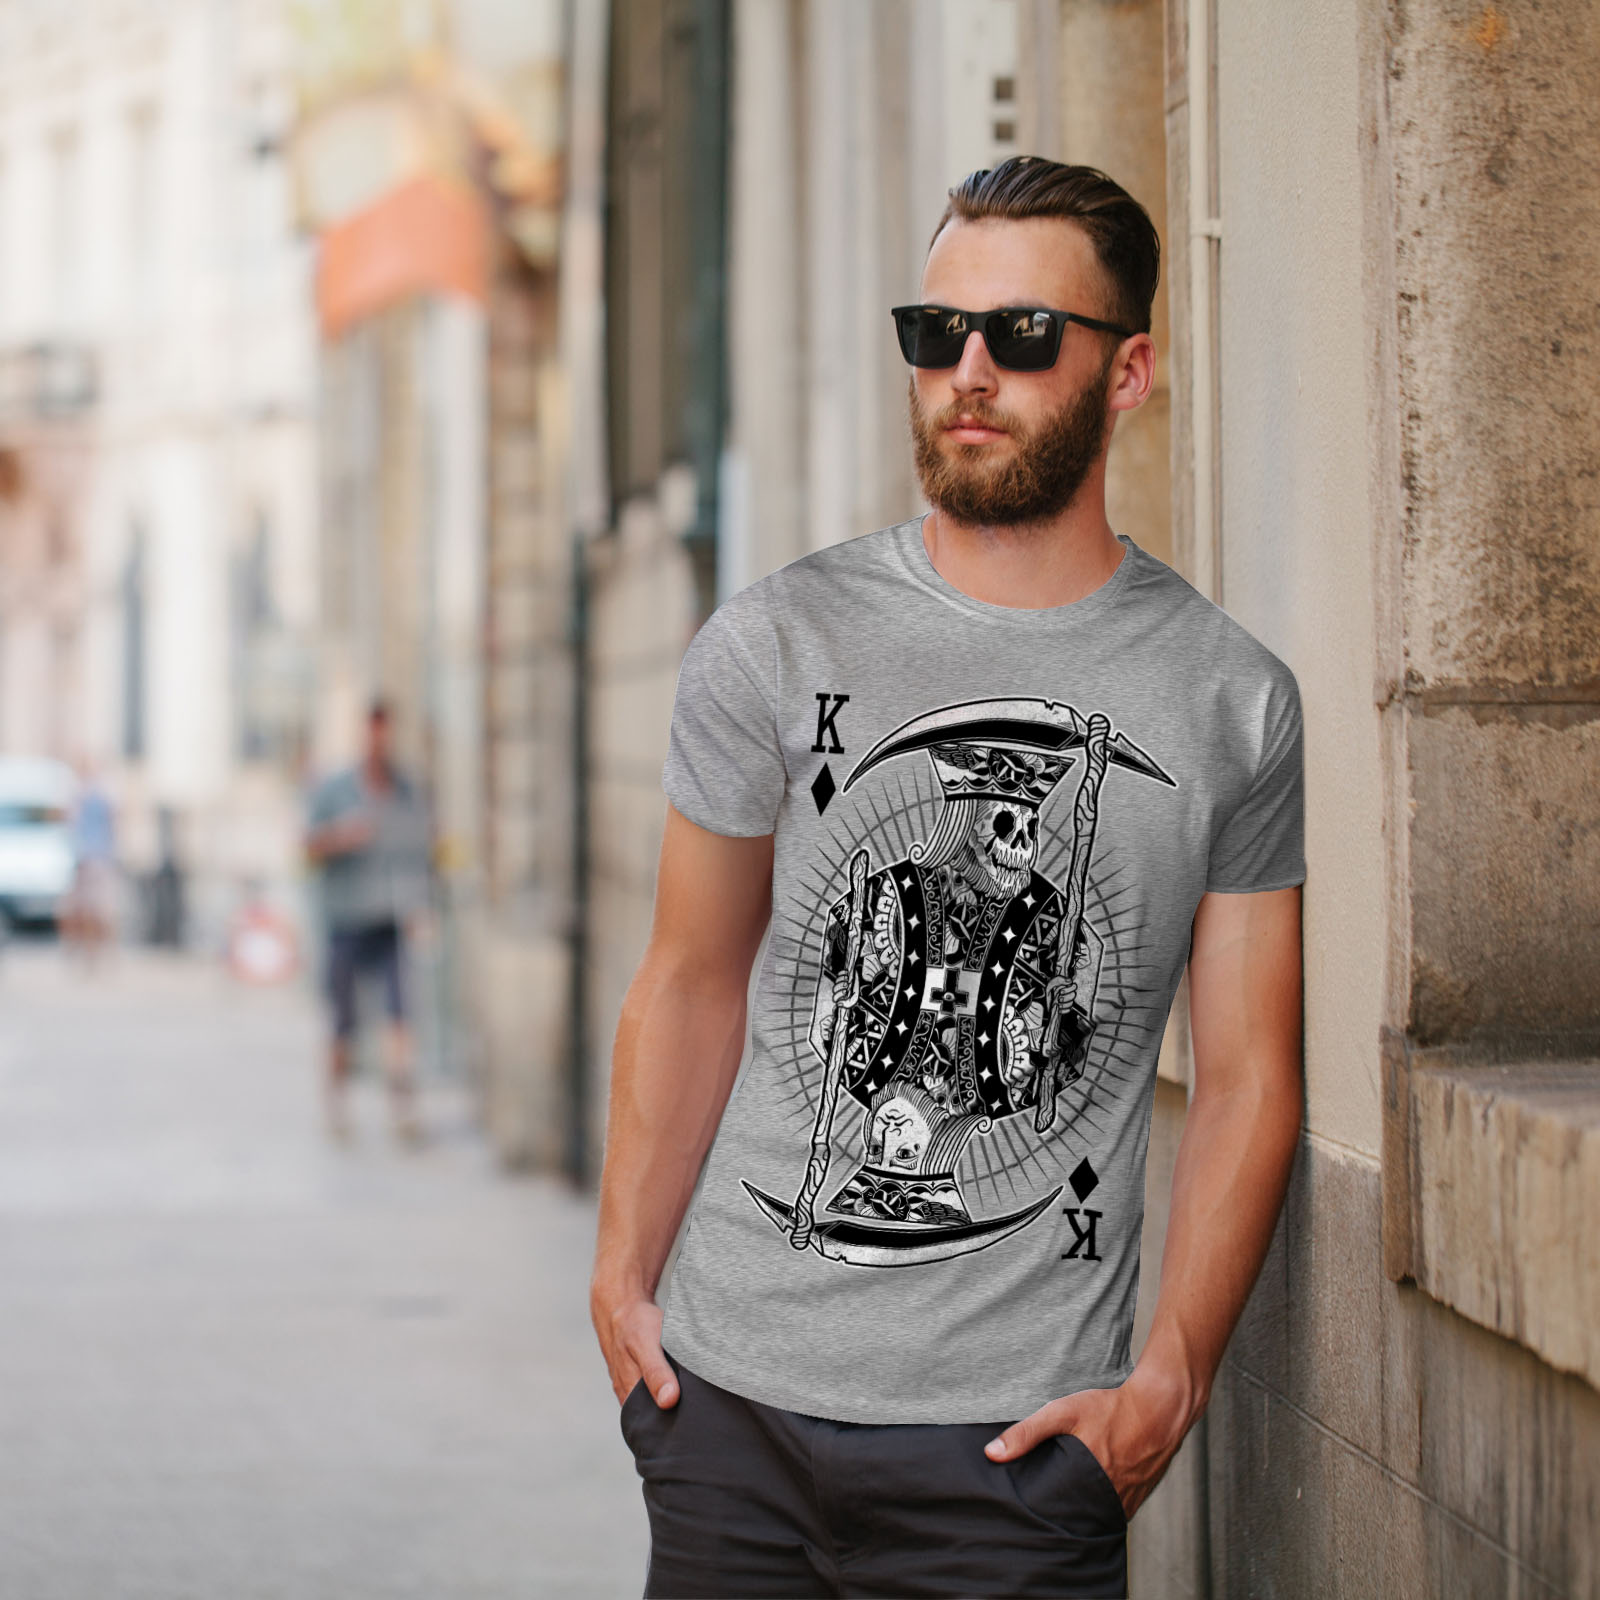 Wellcoda-Poker-Horror-King-Skull-Mens-T-shirt-Graphic-Design-Printed-Tee thumbnail 17